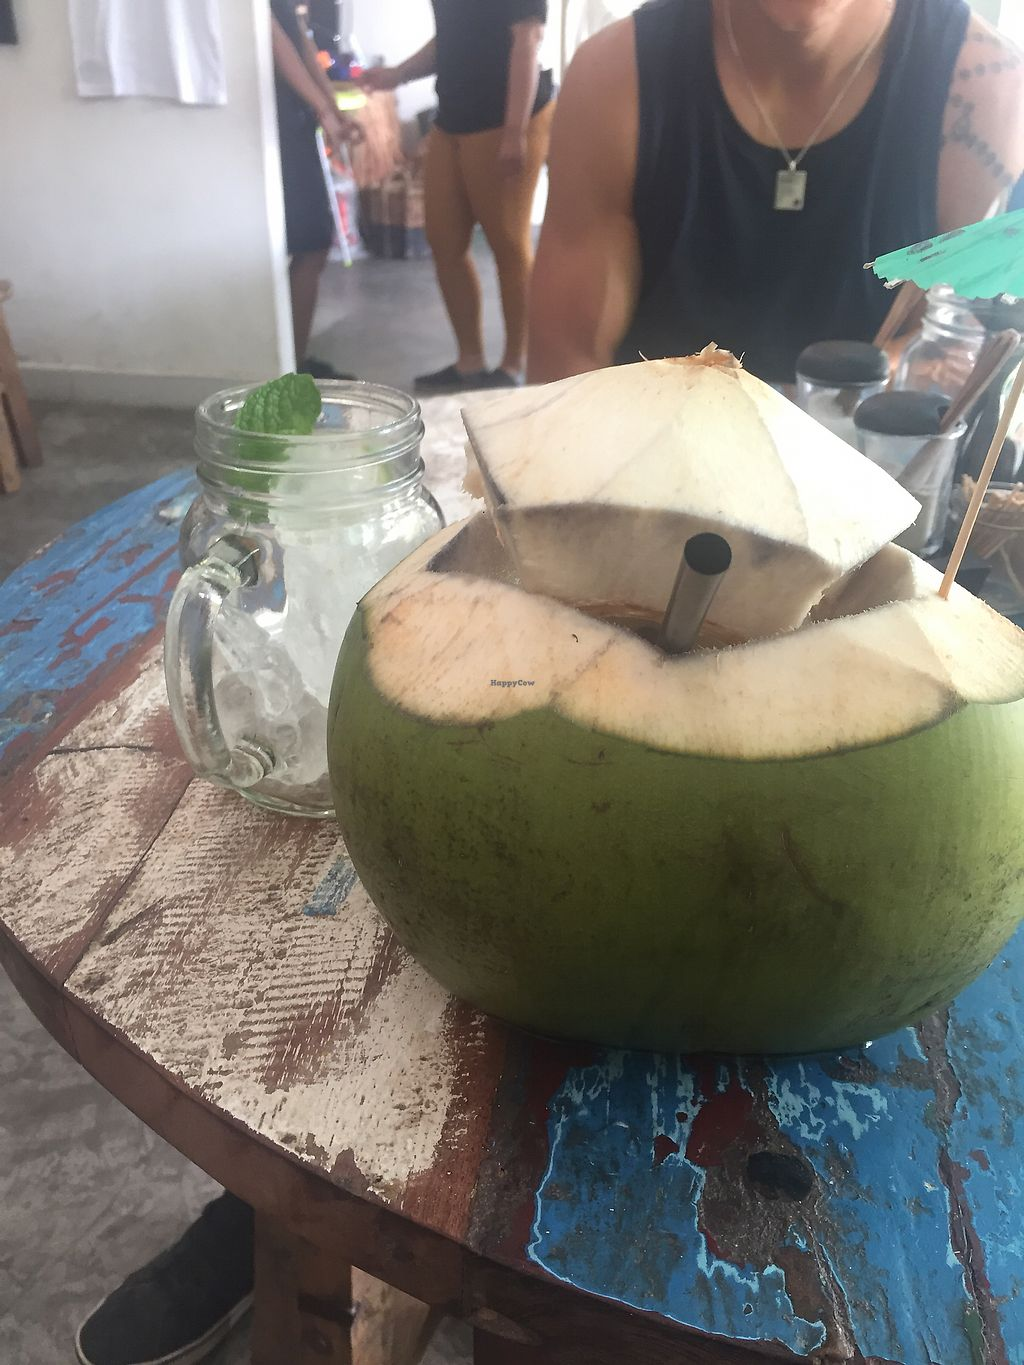 """Photo of CLOSED: The Spicy Coconut  by <a href=""""/members/profile/auroreFR"""">auroreFR</a> <br/>young coconut <br/> August 21, 2017  - <a href='/contact/abuse/image/73419/295044'>Report</a>"""